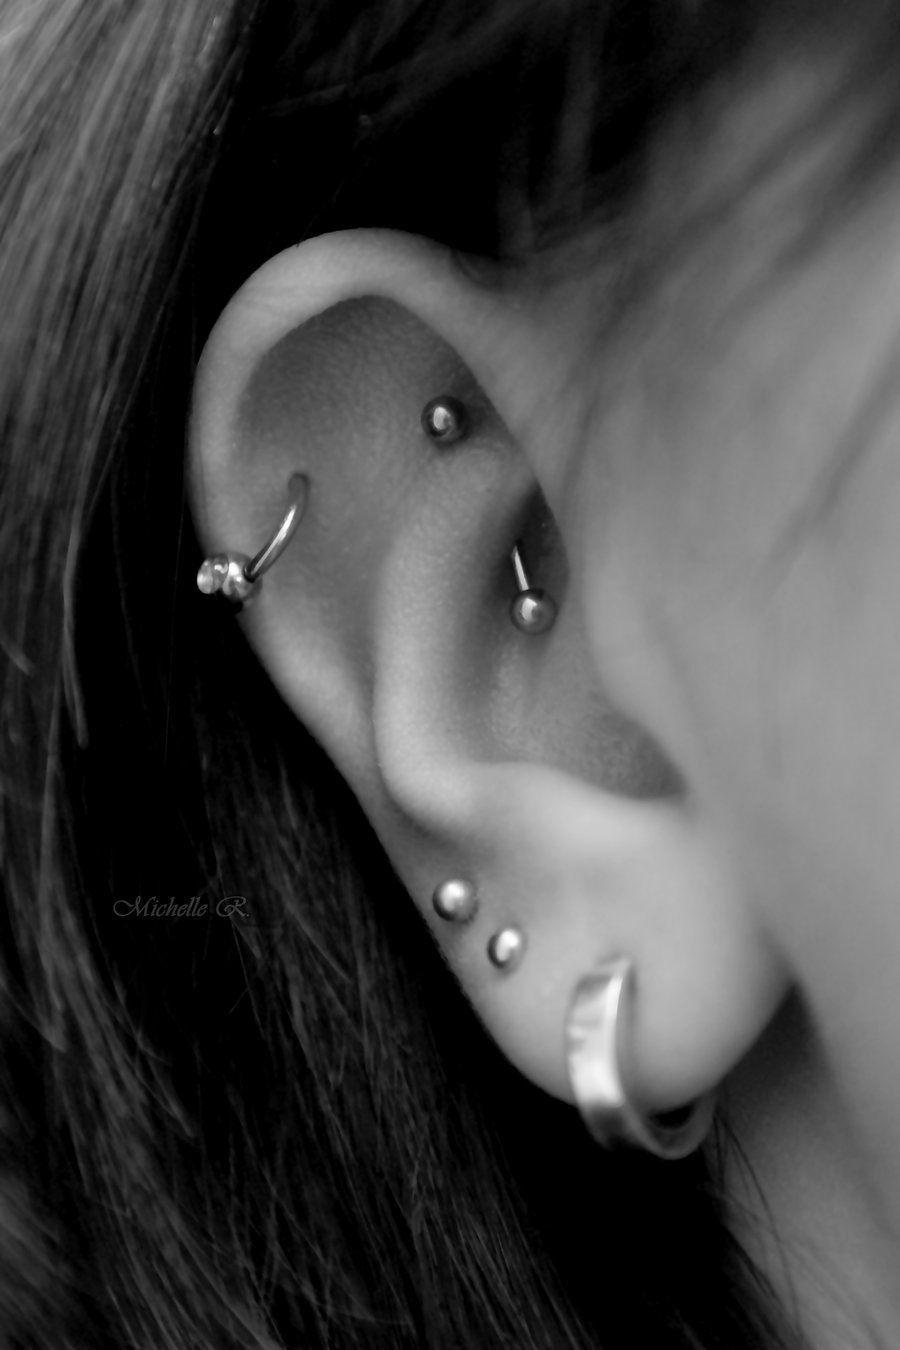 Second ear piercing ideas  I love doing rooks The higher curved barbell one  Earrings